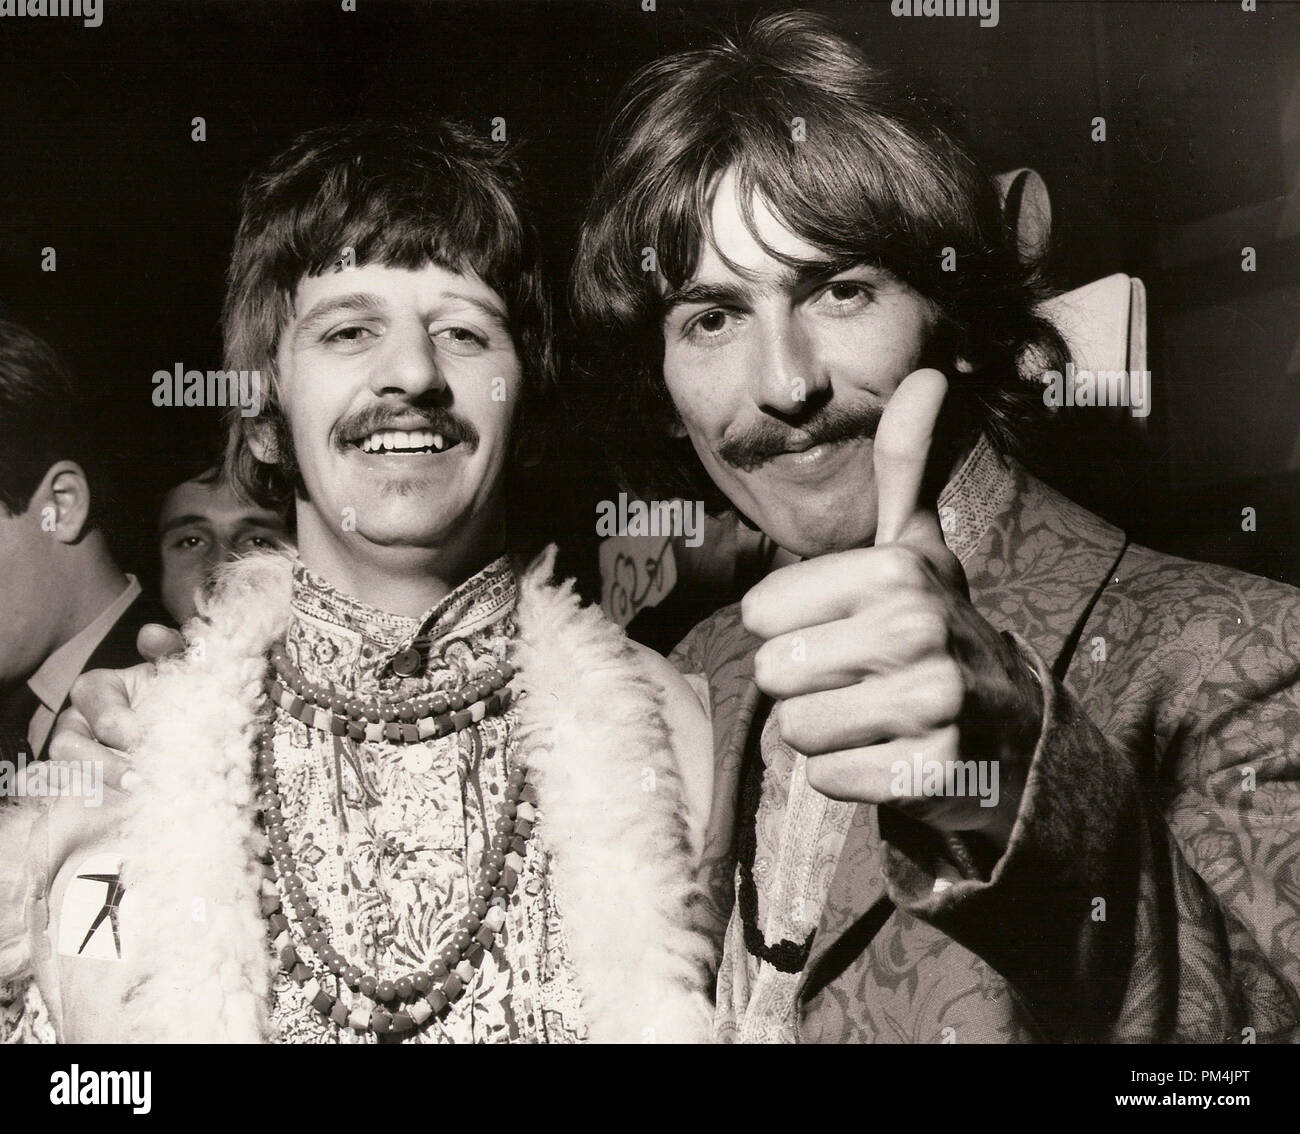 Beatles Ringo Starr And George Harrison 1967 File Reference 1013 002 Tha C Jrc The Hollywood Archive All Rights Reserved Stock Photo Alamy